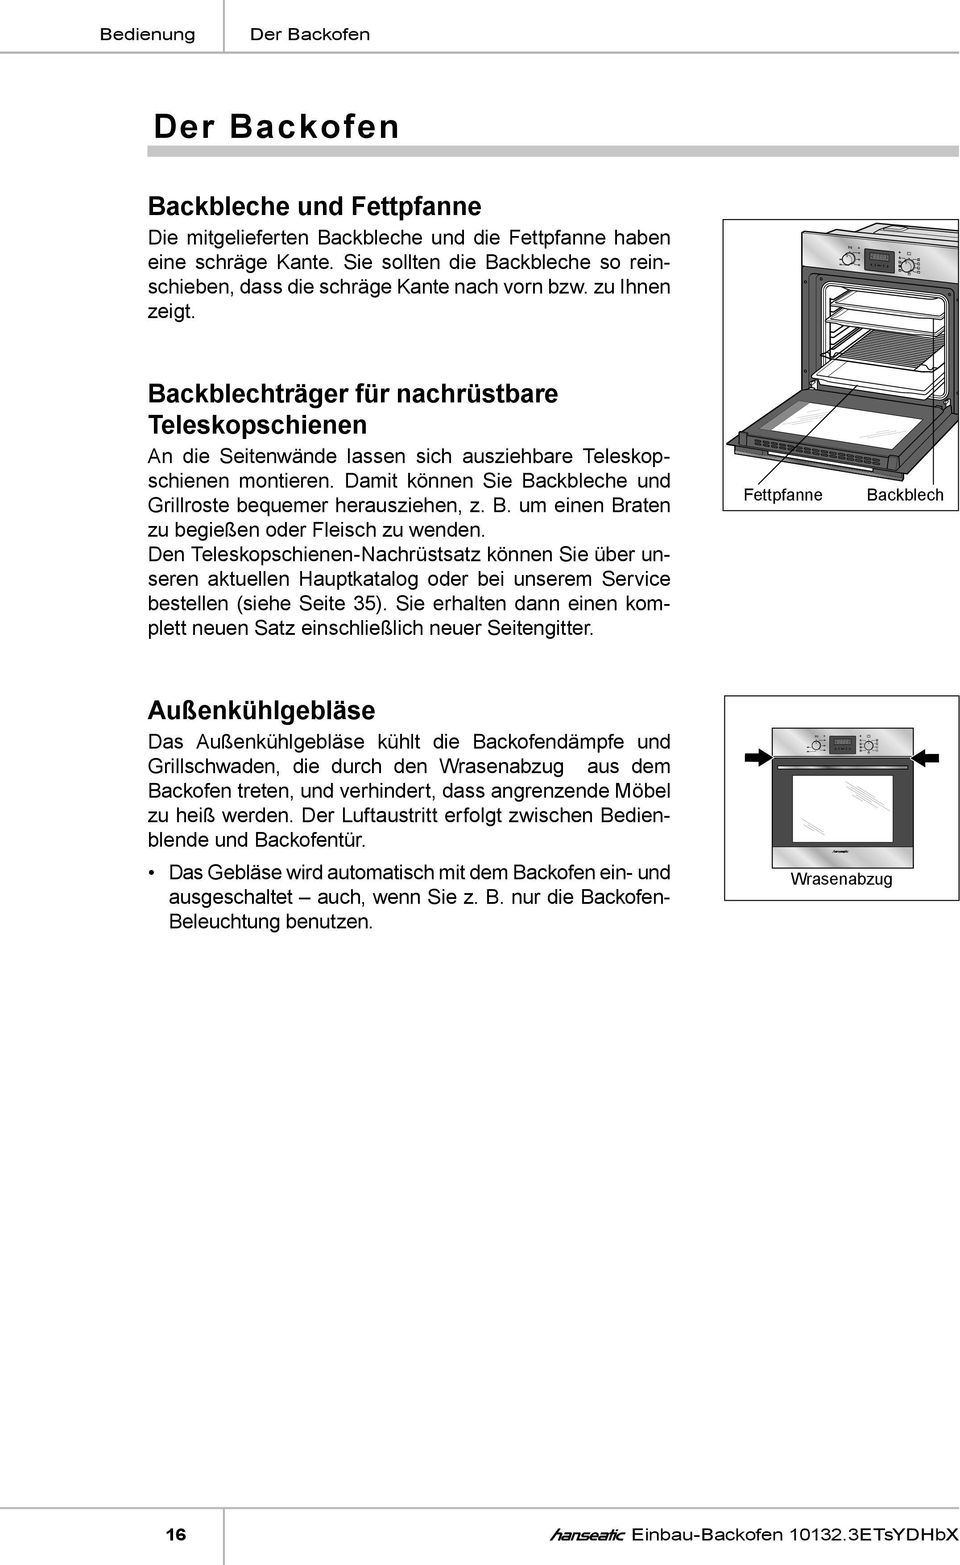 hanseatic einbau backofen mit zeitschaltuhr pdf. Black Bedroom Furniture Sets. Home Design Ideas